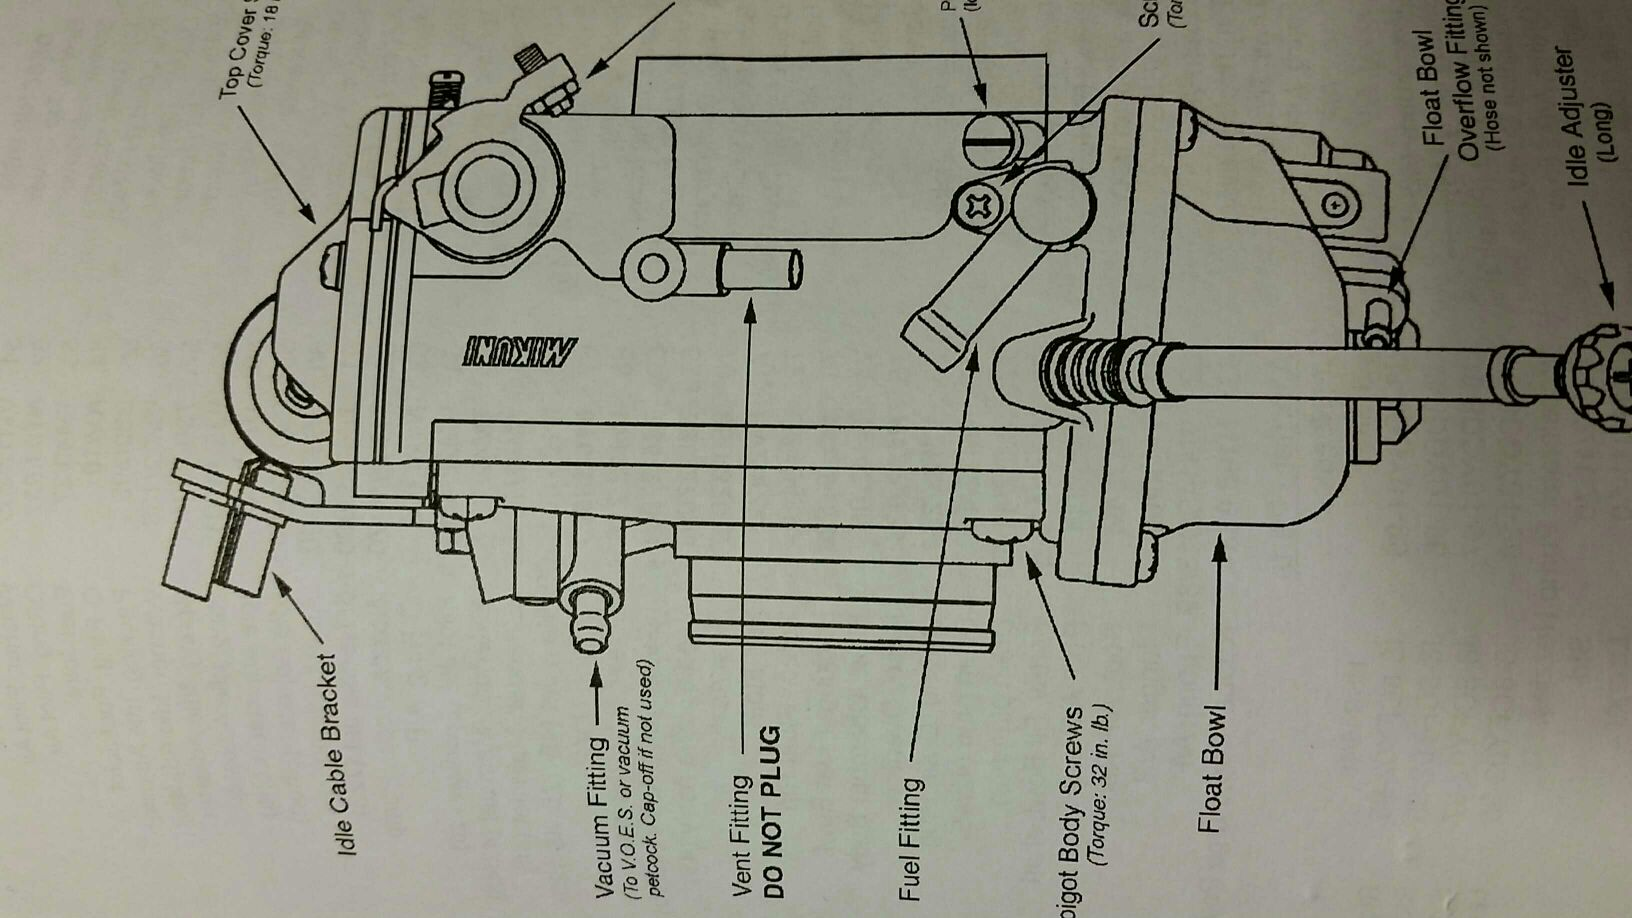 Mikuni 42 VOES ing? - The Sportster and Buell Motorcycle Forum ... on harley chopper wiring diagram, harley handlebar wiring diagram, harley wiring schematics, harley heated grips wiring diagram, harley speedometer wiring diagram, harley softail wiring diagram, harley electrical system, harley wiring diagram wires, harley starter wiring diagram, harley tbw wiring diagram, harley sportster wiring diagram, harley wiring harness diagram, harley ignition wiring, harley ignition switch replacement, harley dyna frame diagram, harley wiring diagram simplified, harley coil wiring, harley wiring diagrams online, harley turn signal wiring diagram, harley wiring diagrams pdf,